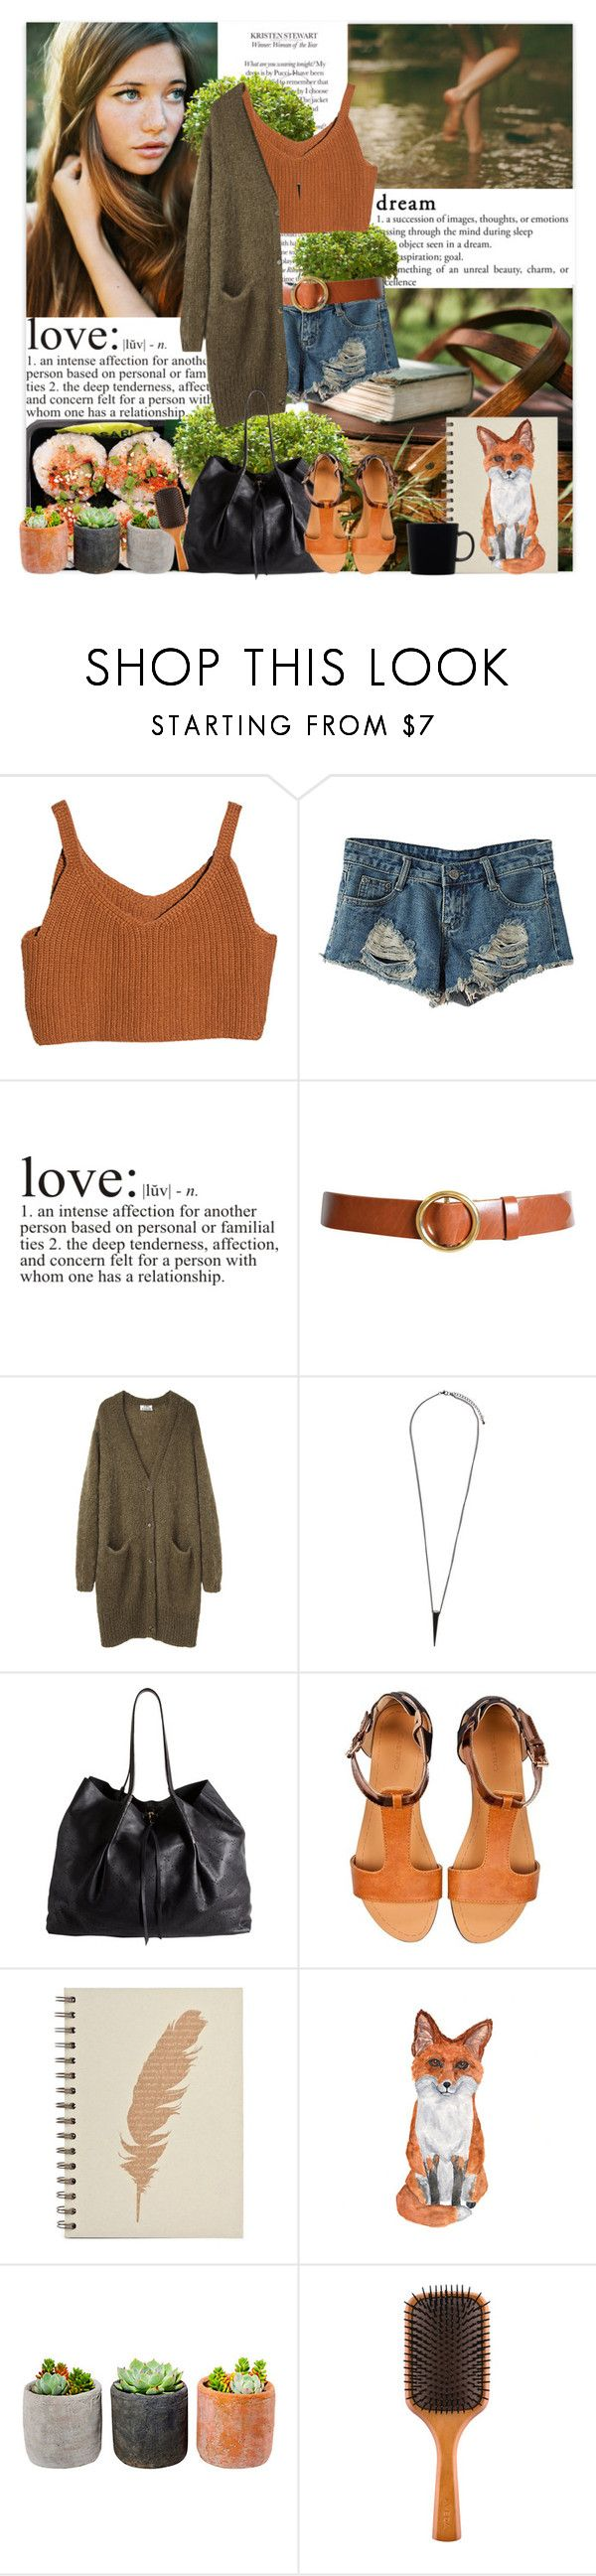 """M comme Mode de vie !!! 17"" by vicky-soleil ❤ liked on Polyvore featuring WALL, Frame, Acne Studios, Pieces, Nina Ricci, Shop Succulents, Aveda and iittala"